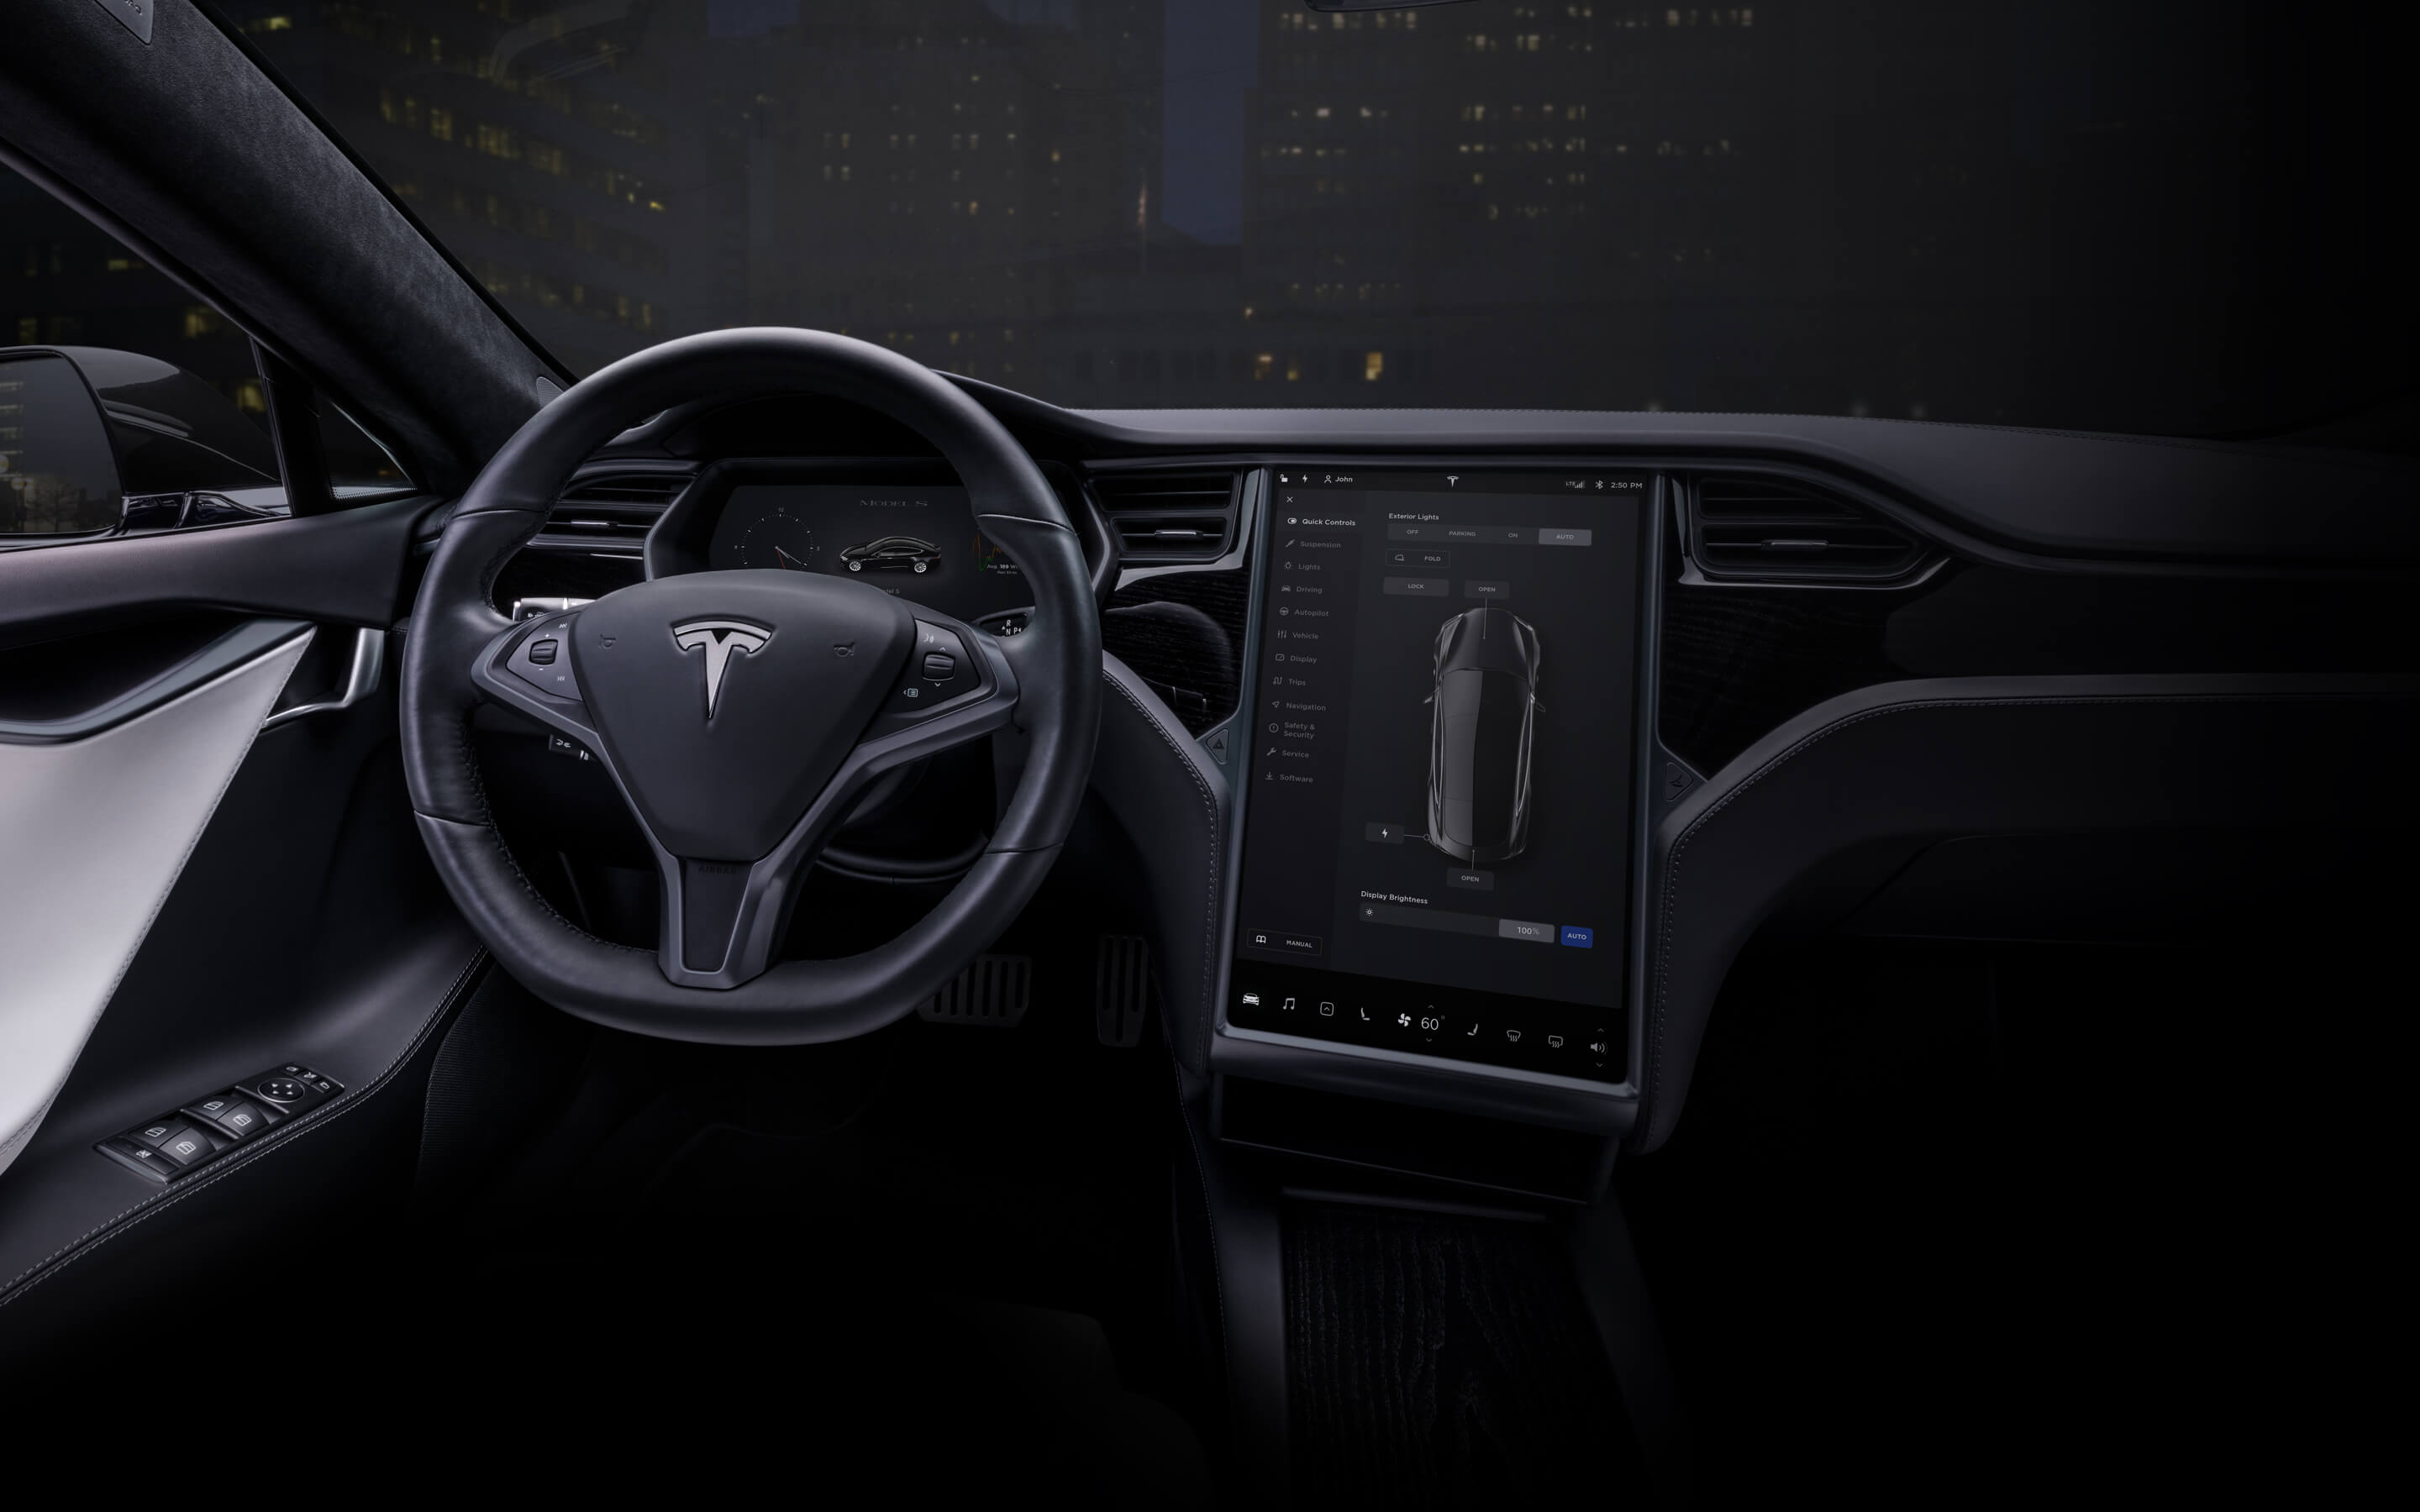 """Black Model S interior with 17"""" touchscreen and steering wheel"""